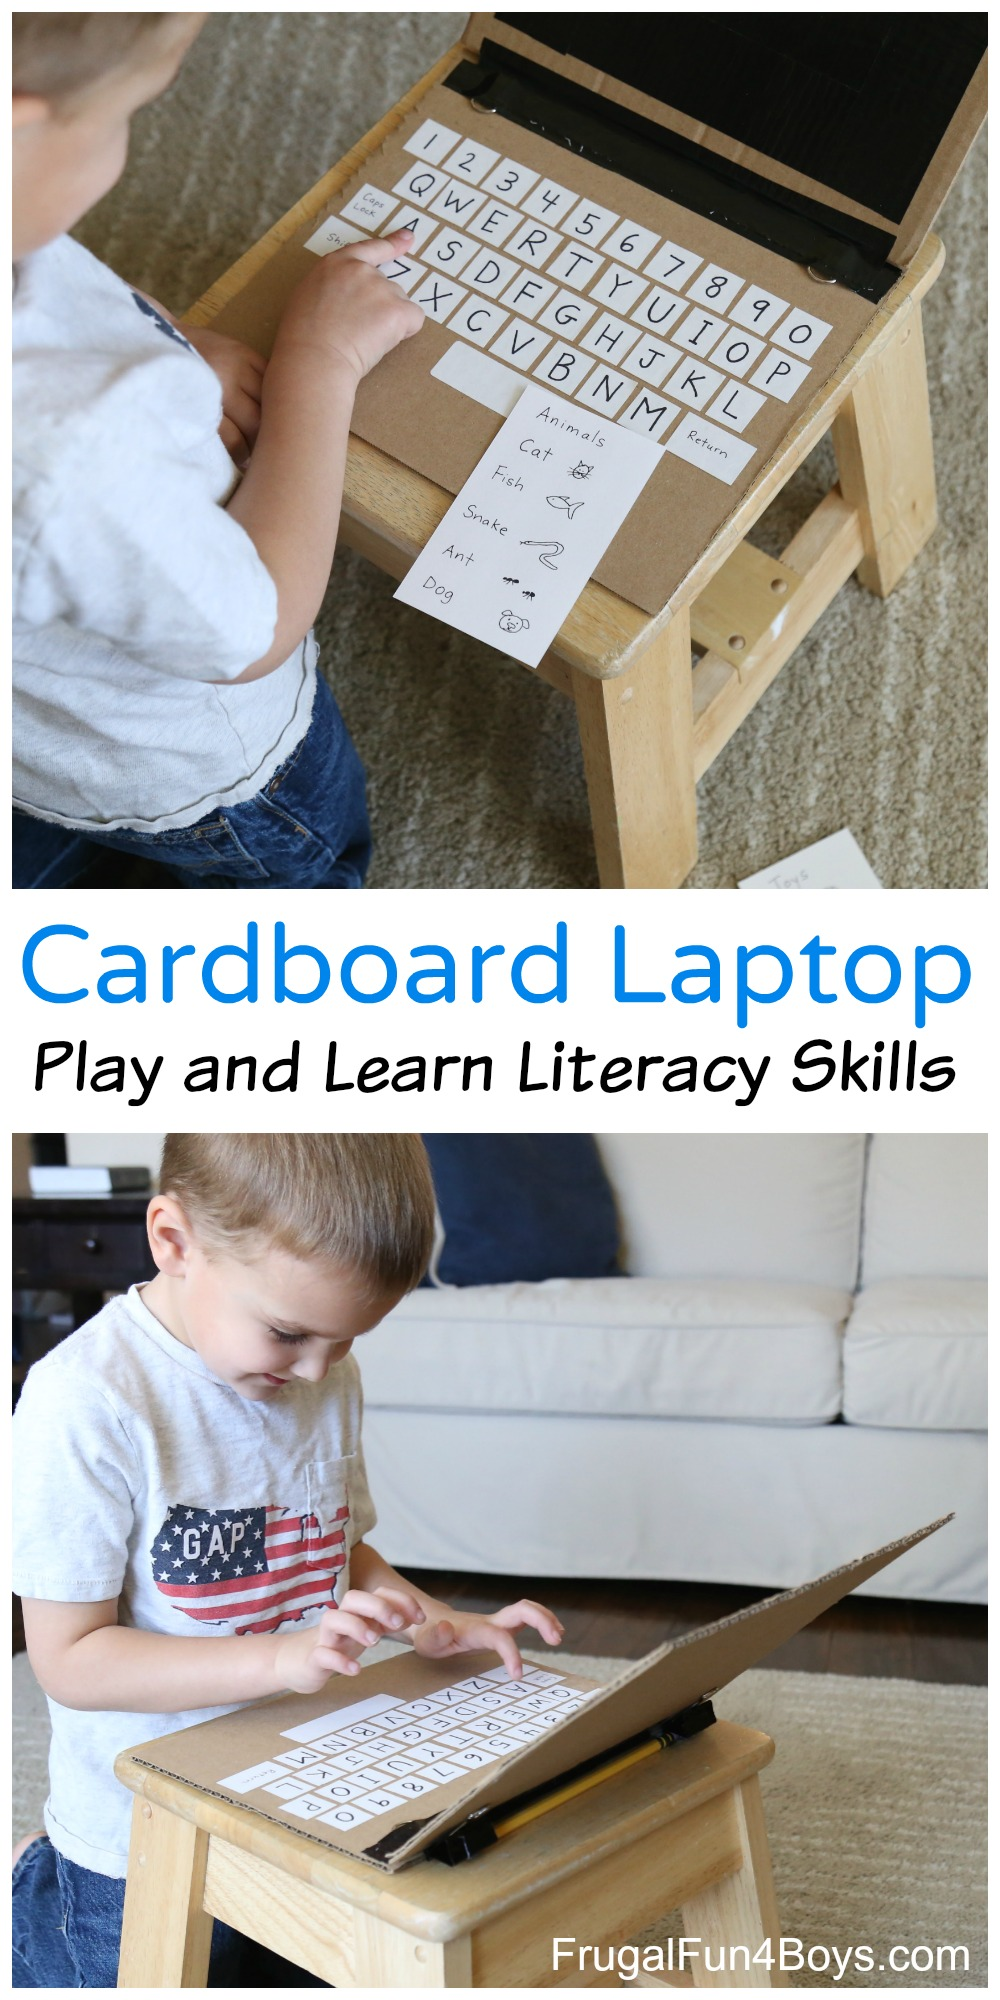 Cardboard Laptop - Play and Learn Literacy Skills!